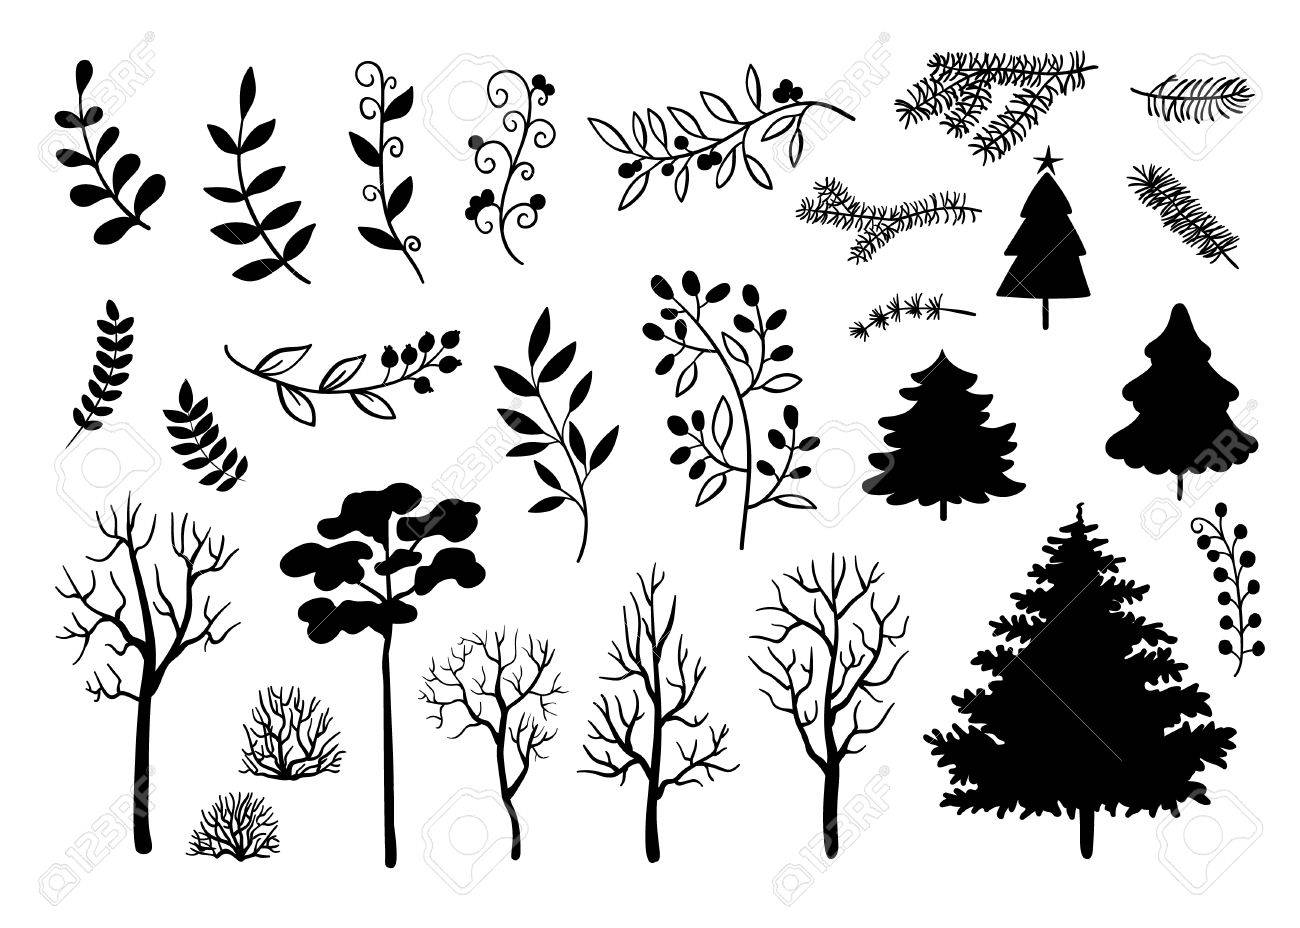 1300x928 Hand Drawn Black Silhouette Of Trees, Branches, Leaves Set. Birch